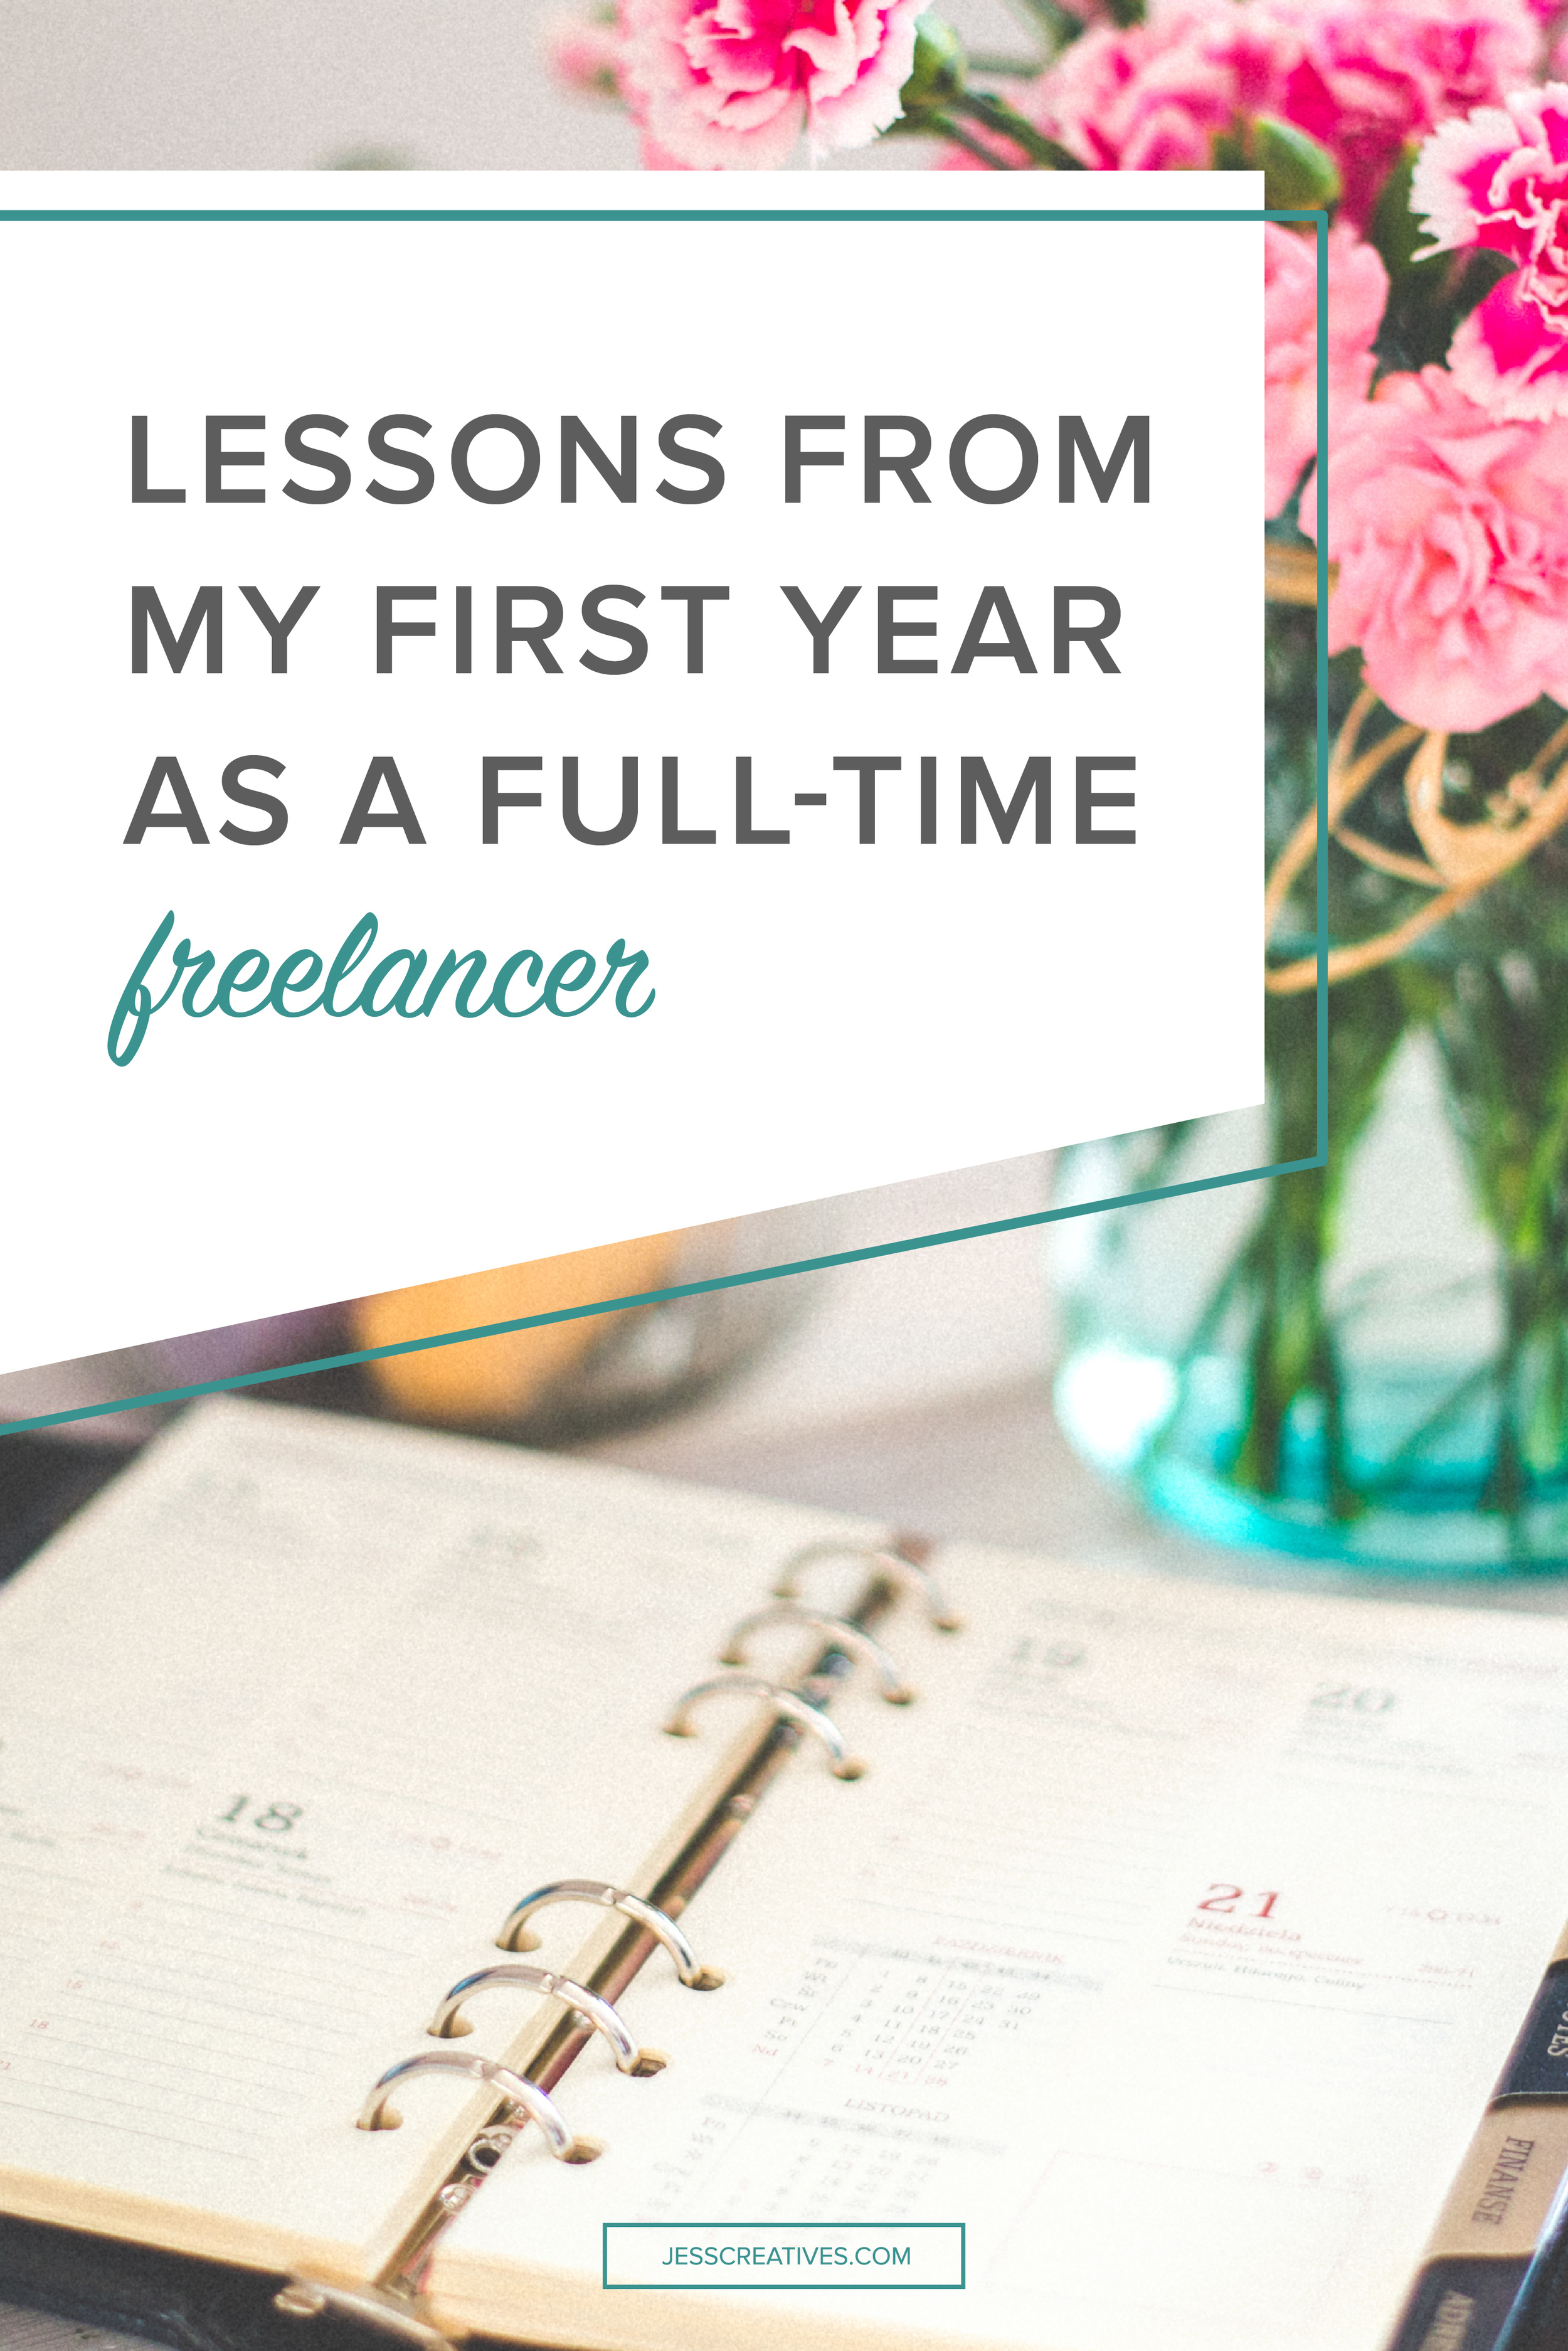 Lessons from my first year as a full-time freelancer